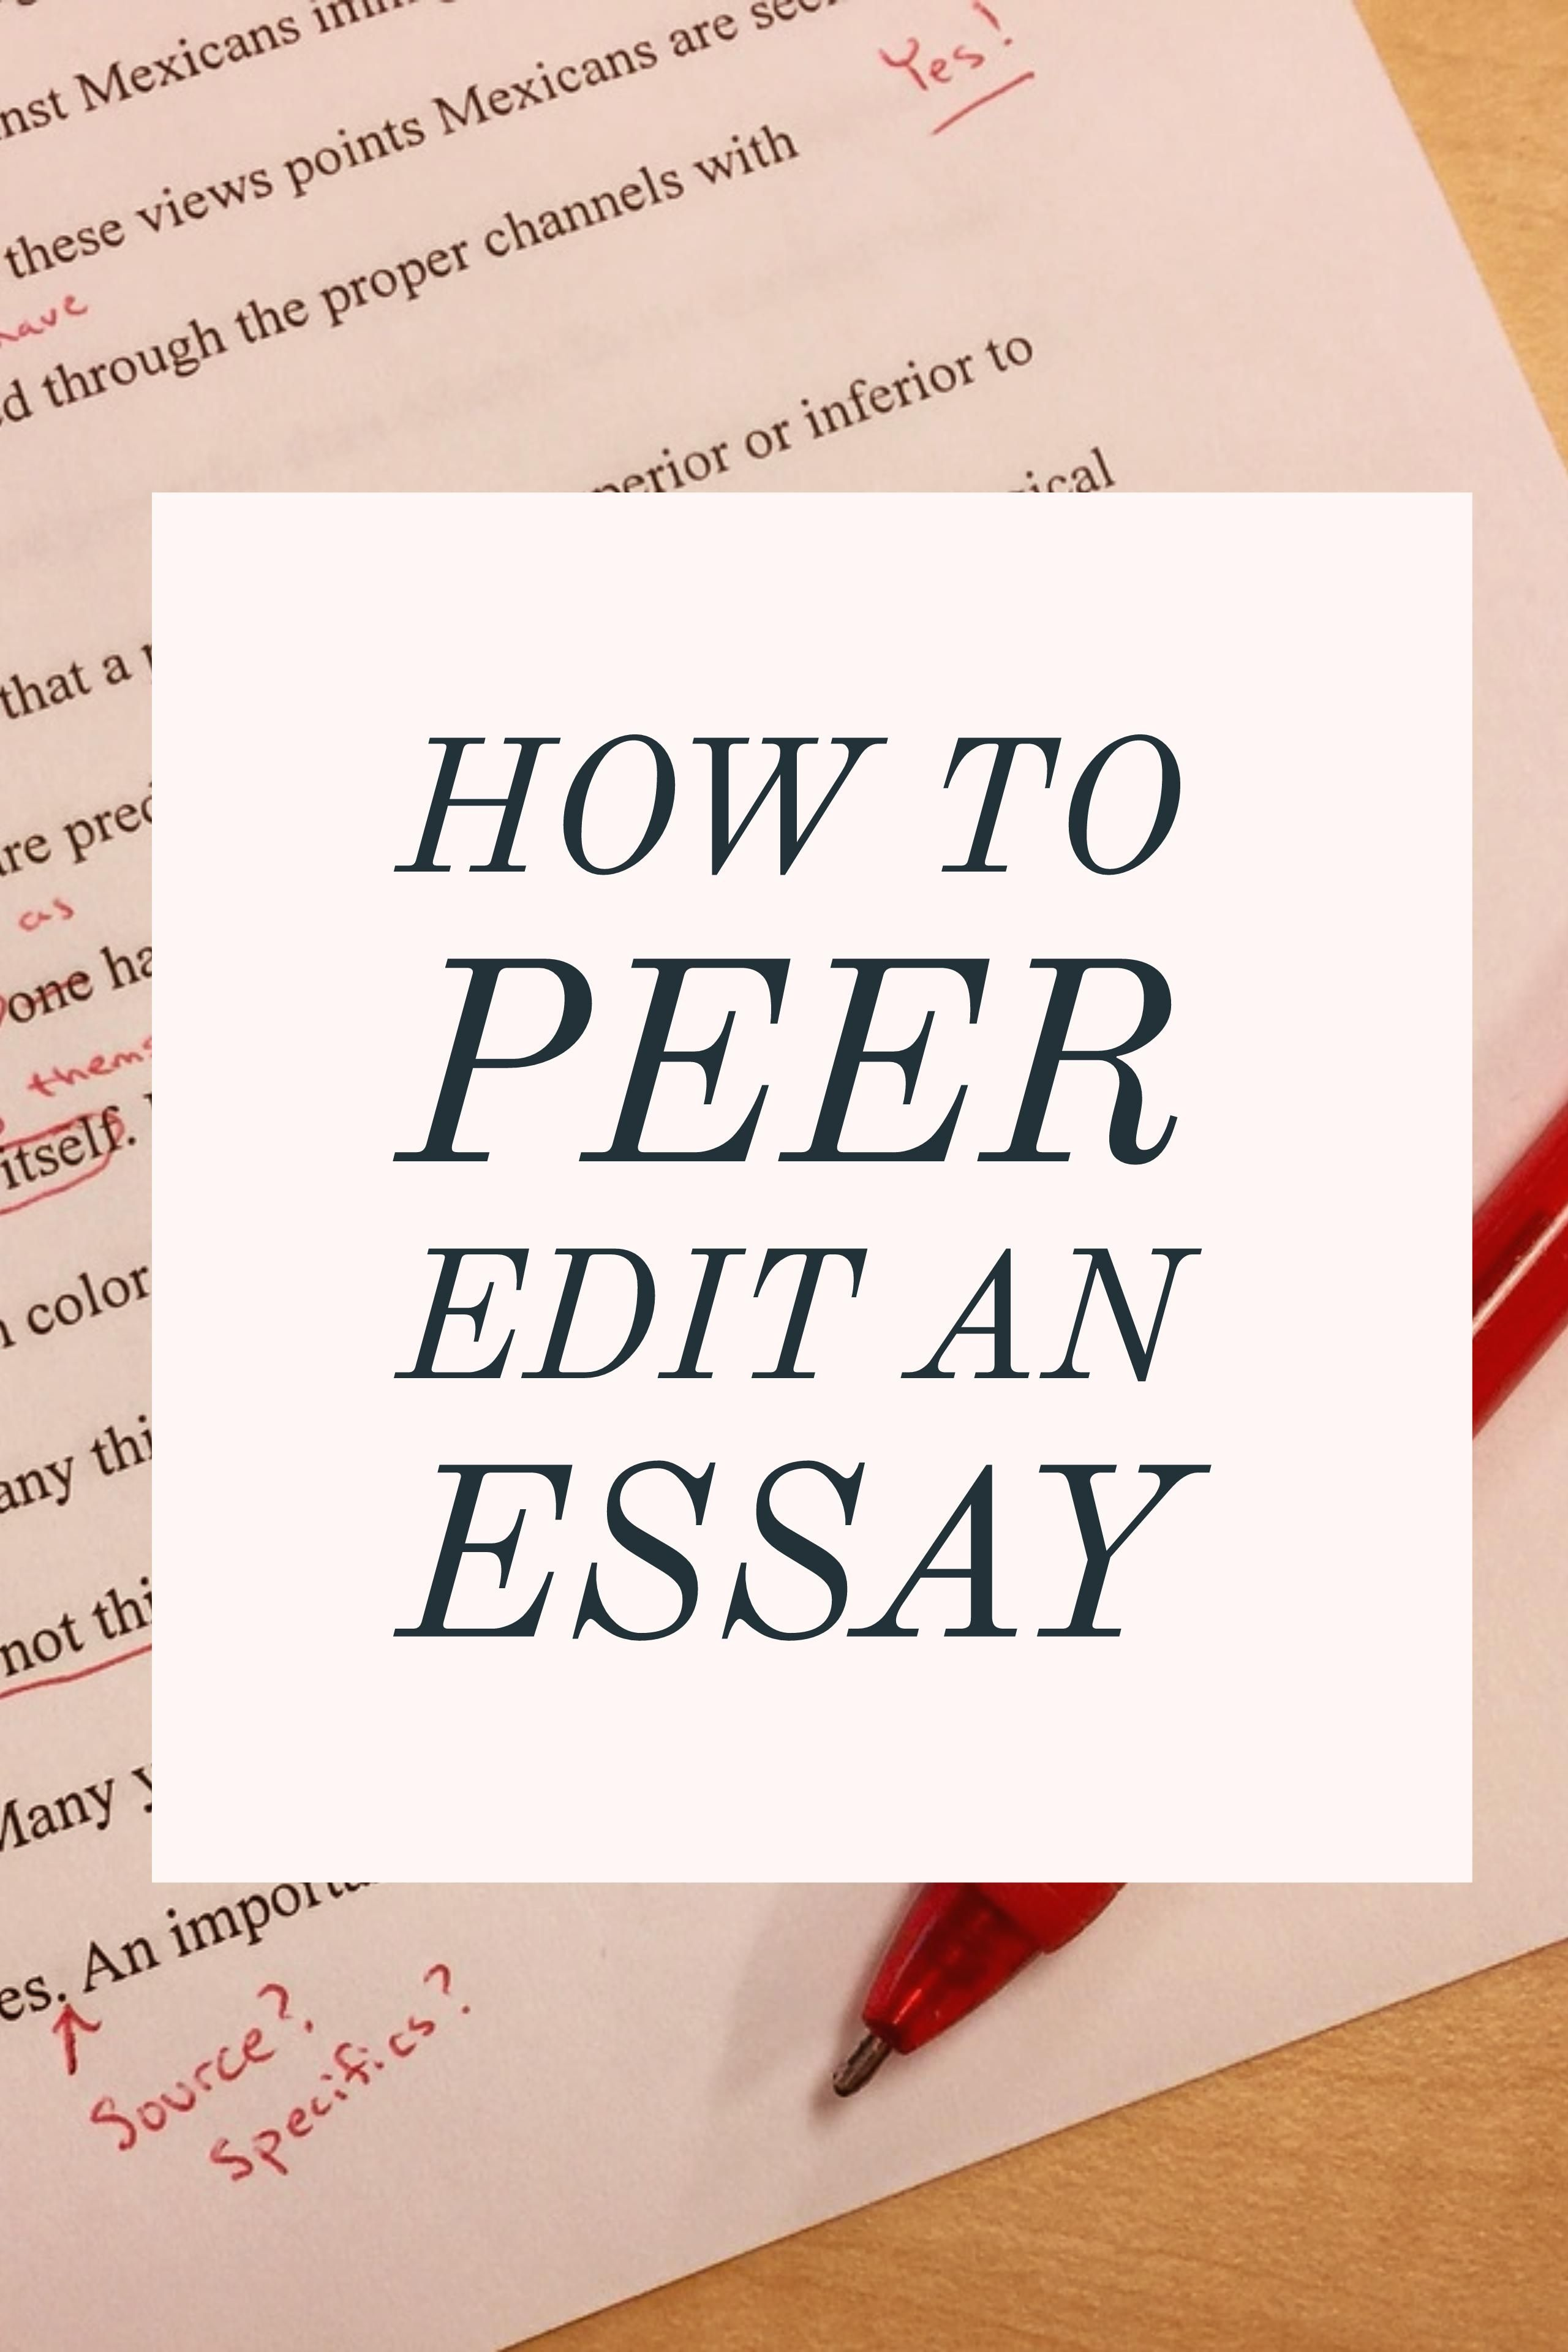 How To Peer Edit An Essay  Grammar Girl Tips  Pinterest  This Threestep Process For Peer Editing Will Take The Stress Out Of It For  Both The Writer And Editor Grammargirl Narrative Essays Examples For High School also Writing Essay Papers Healthy Lifestyle Essay